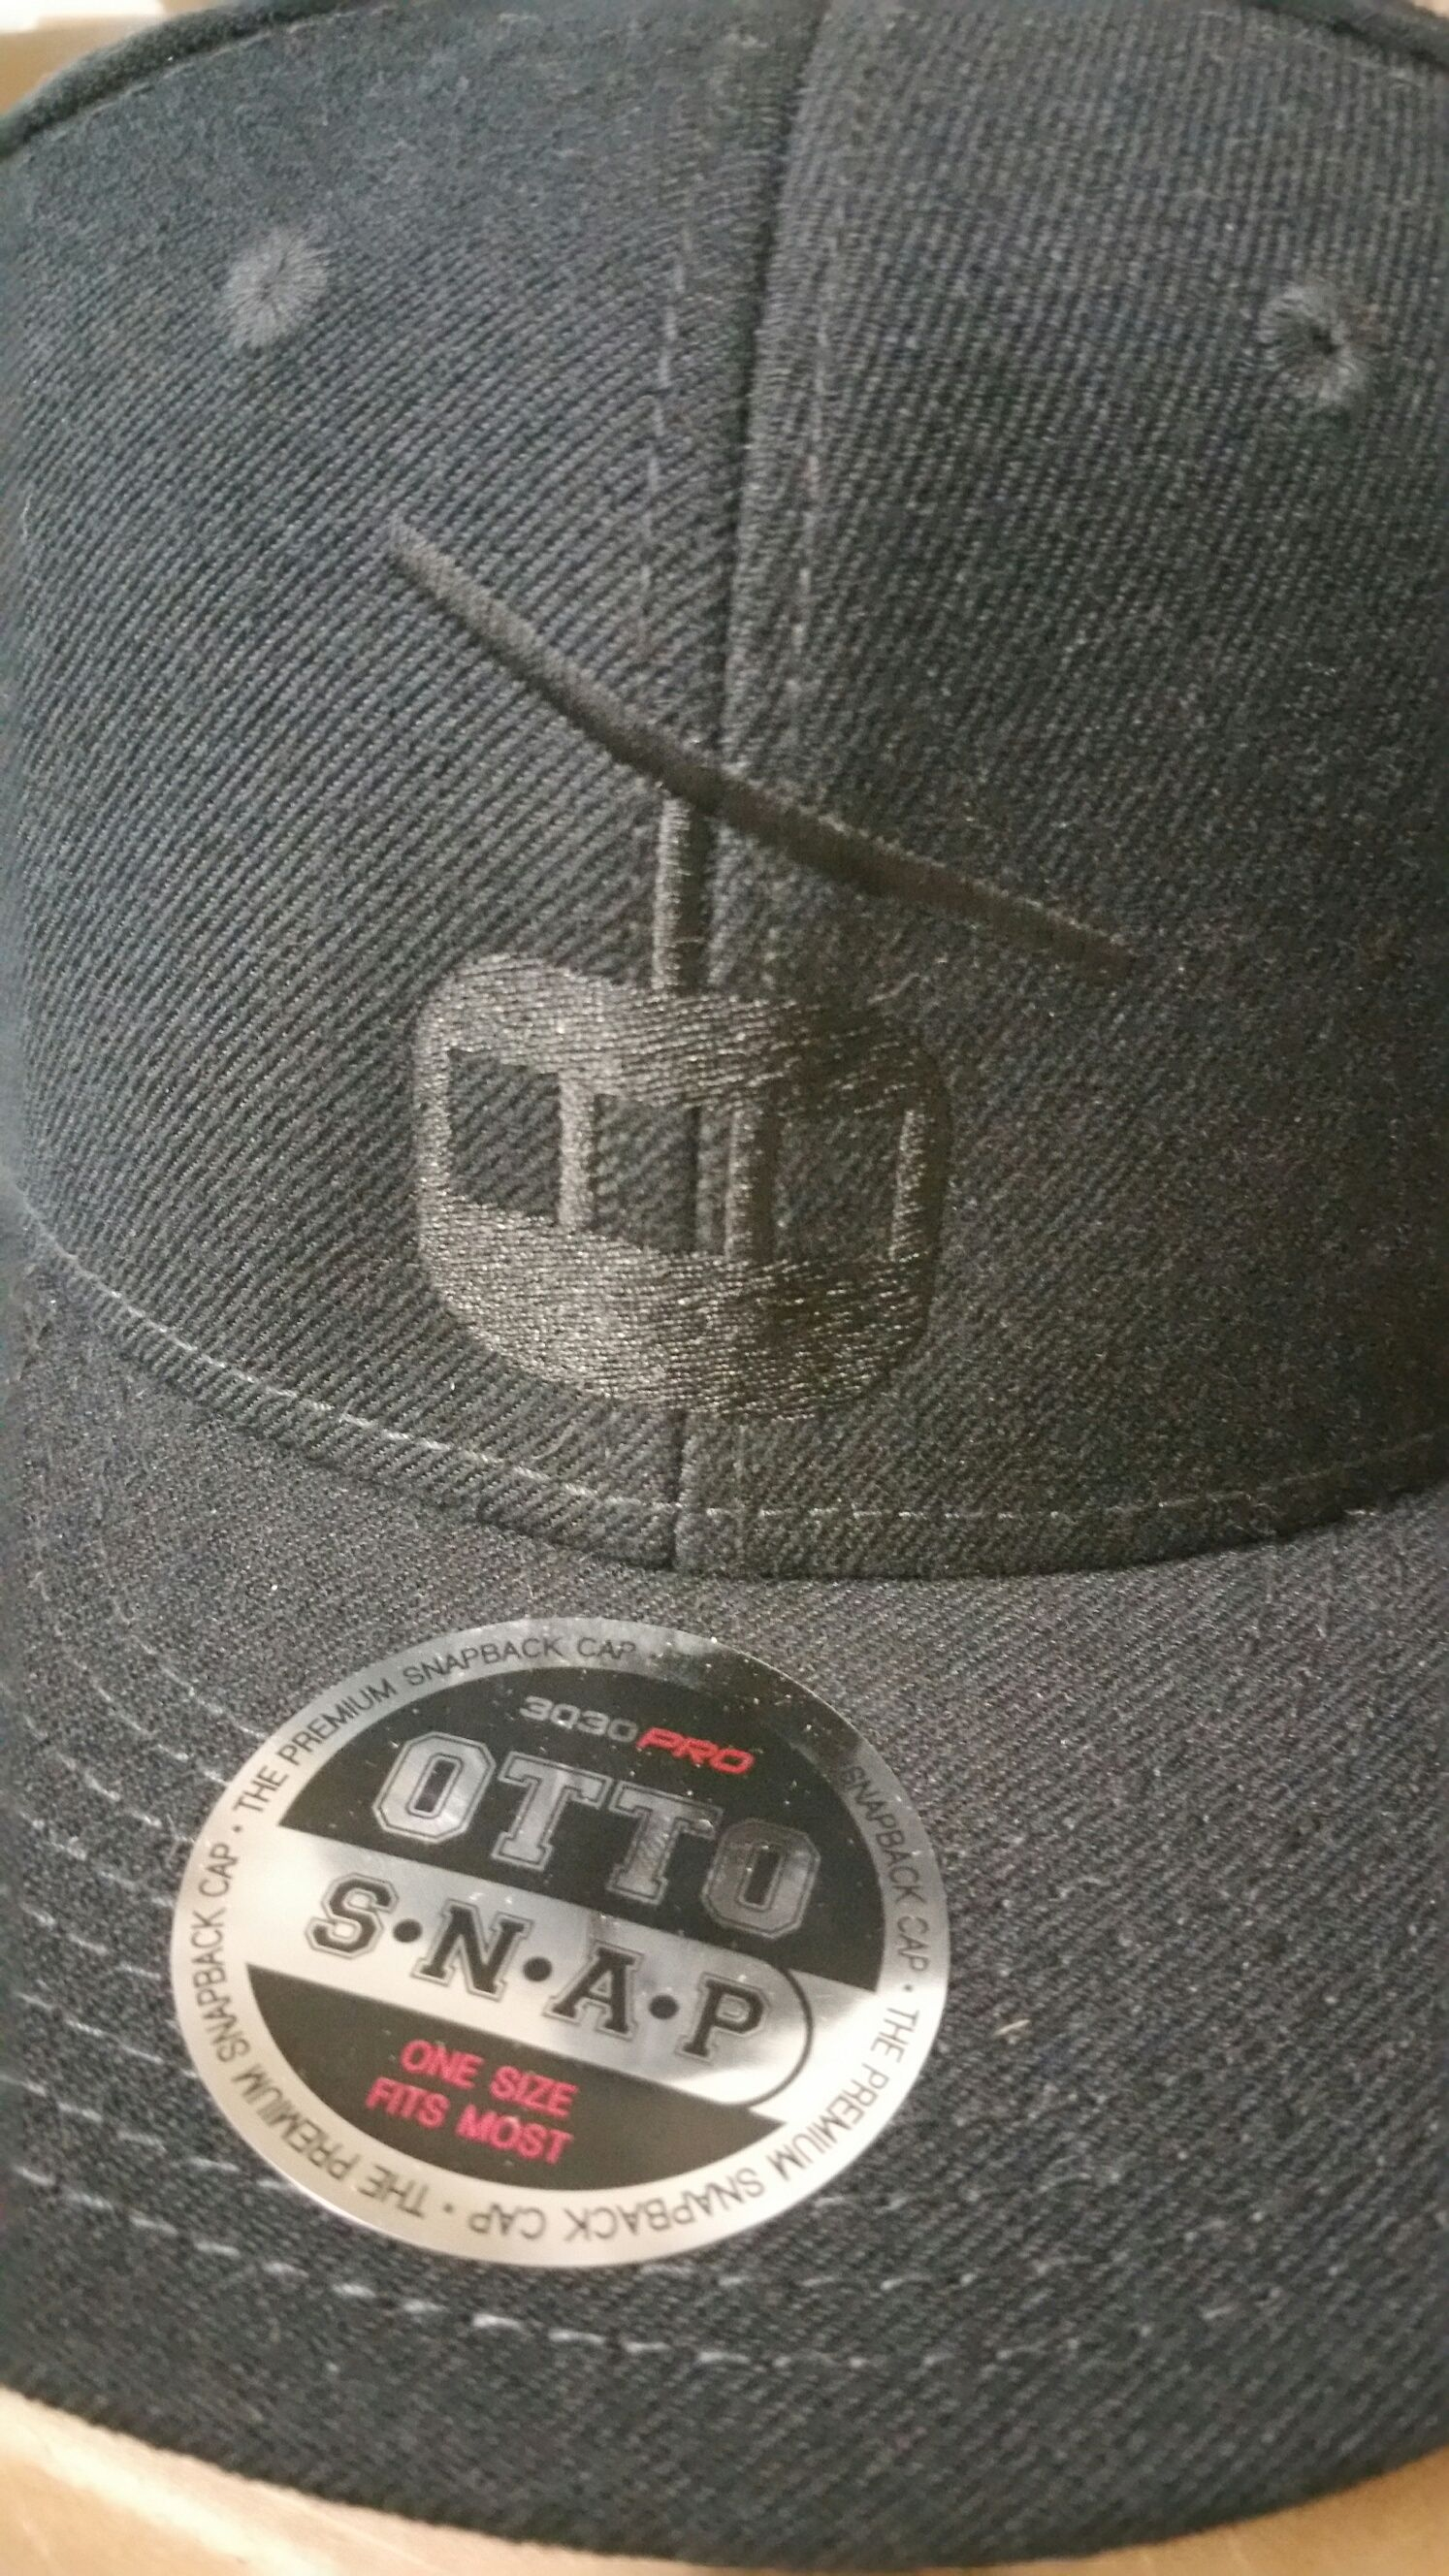 Fresh Tracks Foods & Catering embroidered hat.  #tiktokink #embroidery #blackhat #freshtracksfoods #embroiderycolorado #ottosnap #otto